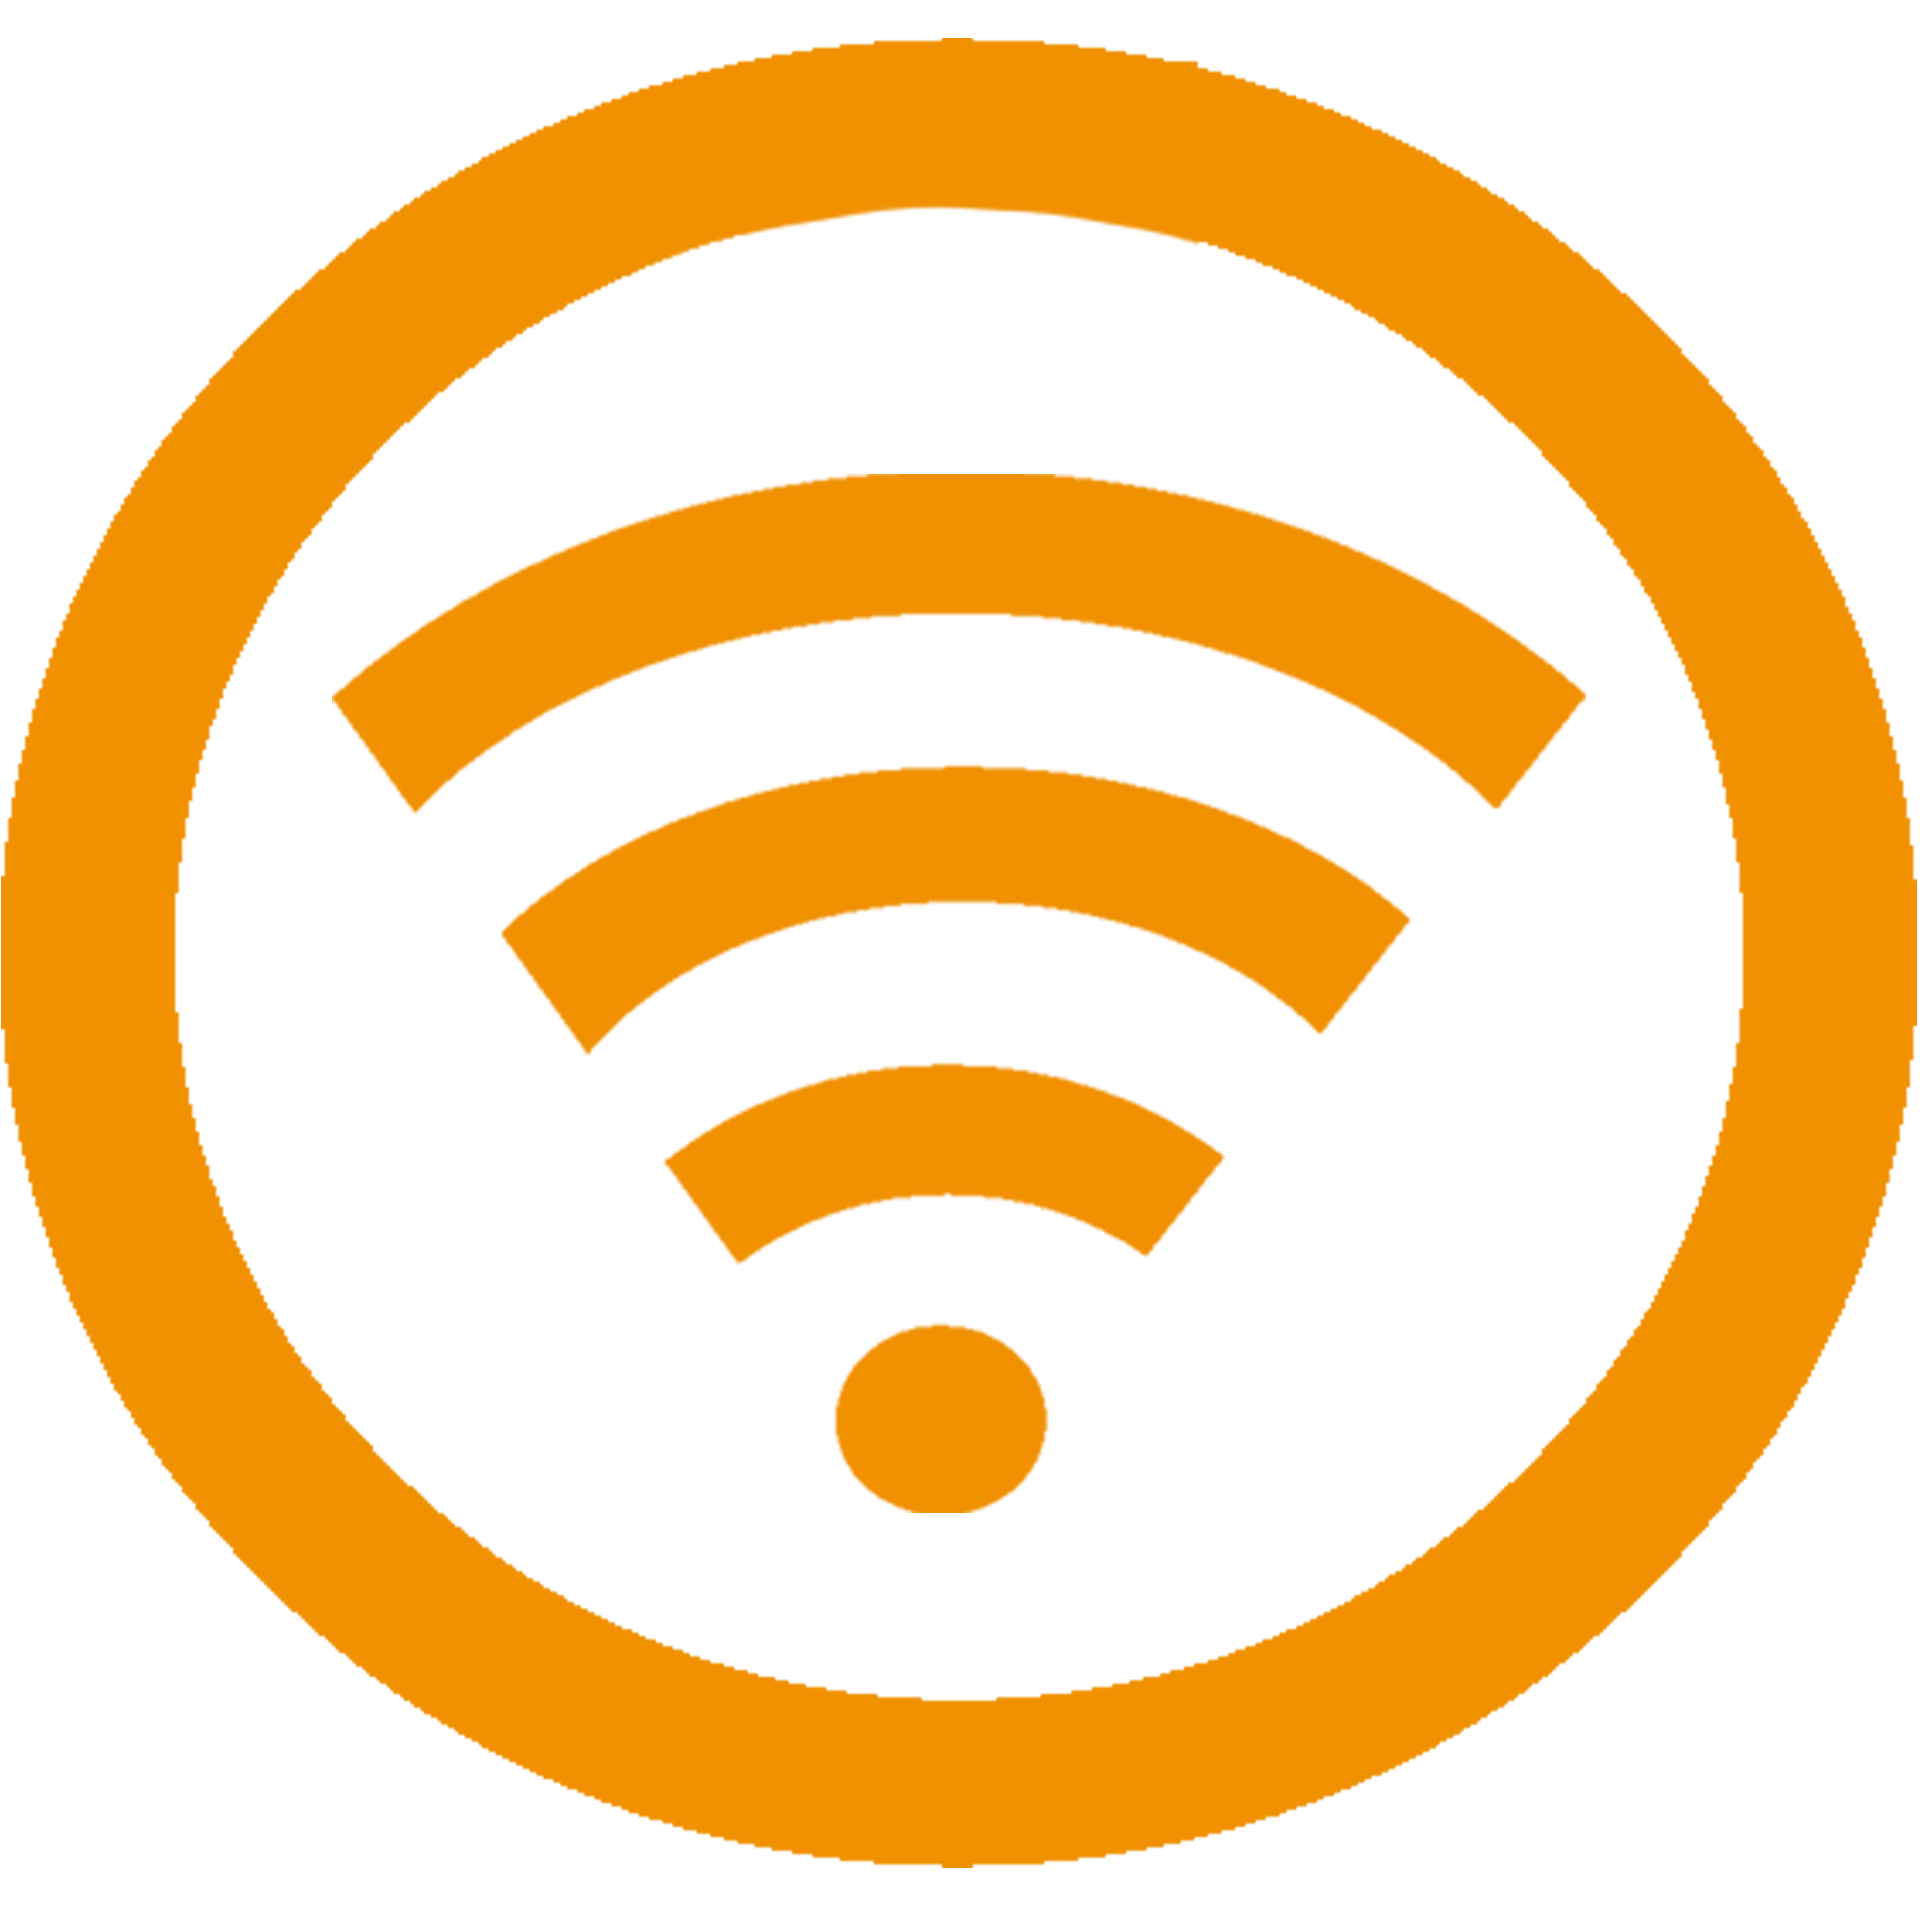 Wifi Icon Yellow PNG Image Wifi icon, Icon, Wifi